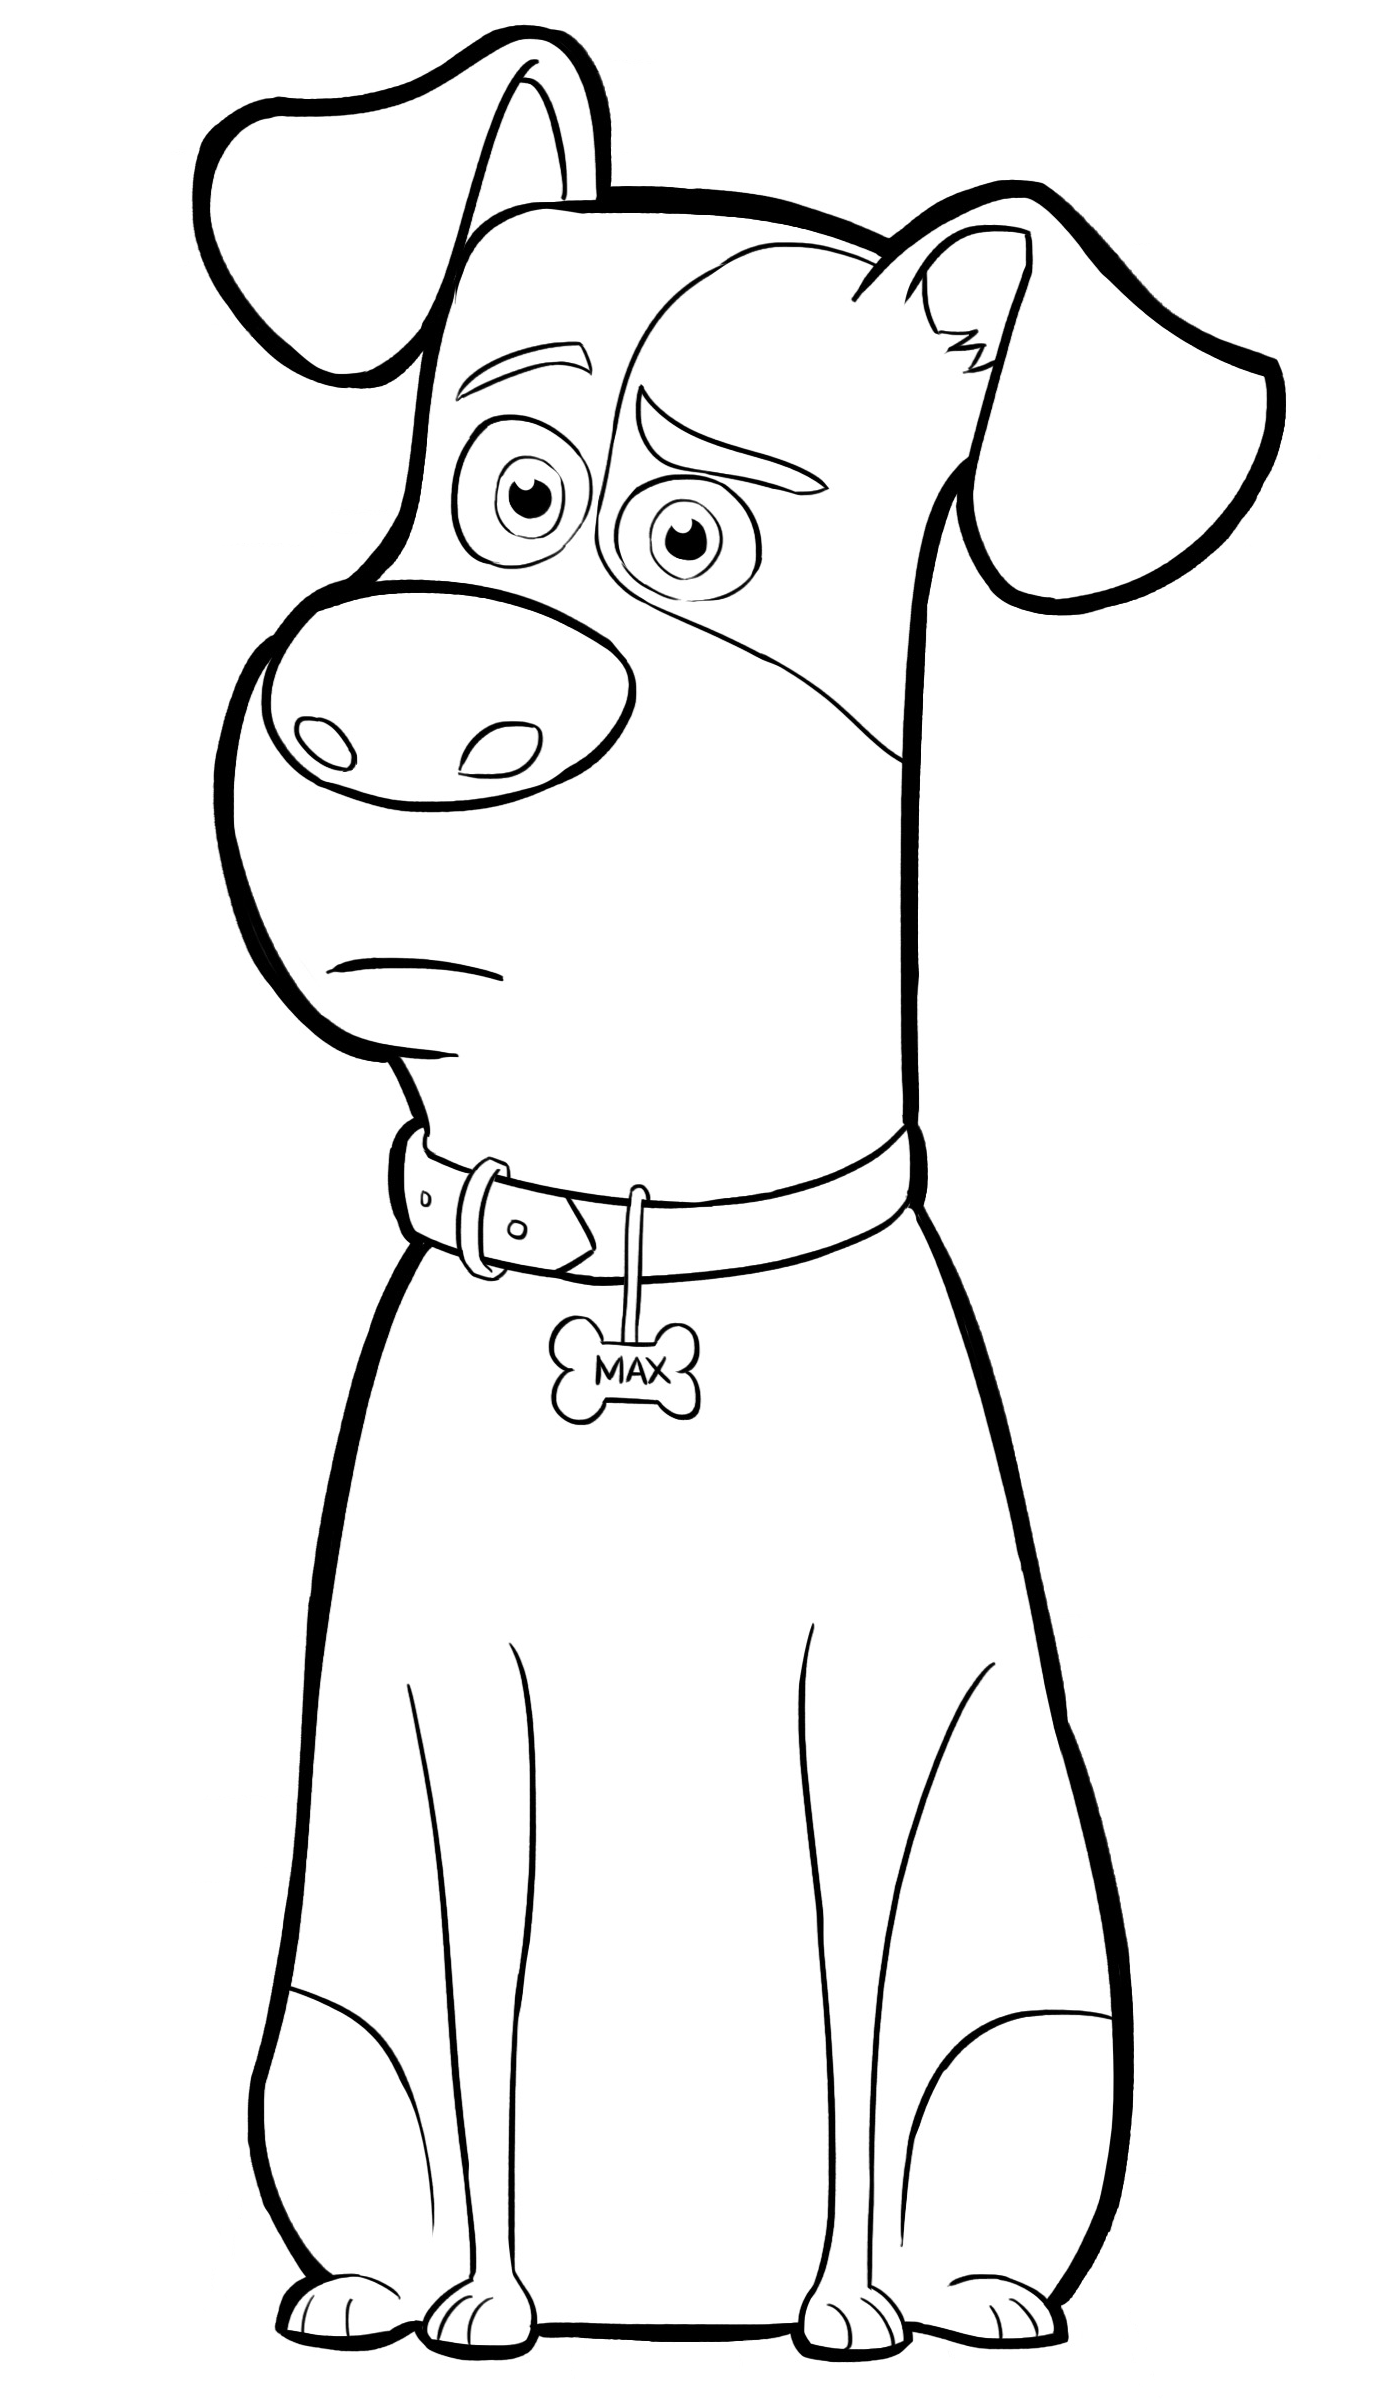 coloring pictures to color for kids 40 exclusive kids coloring pages ideas we need fun kids color to pictures for coloring